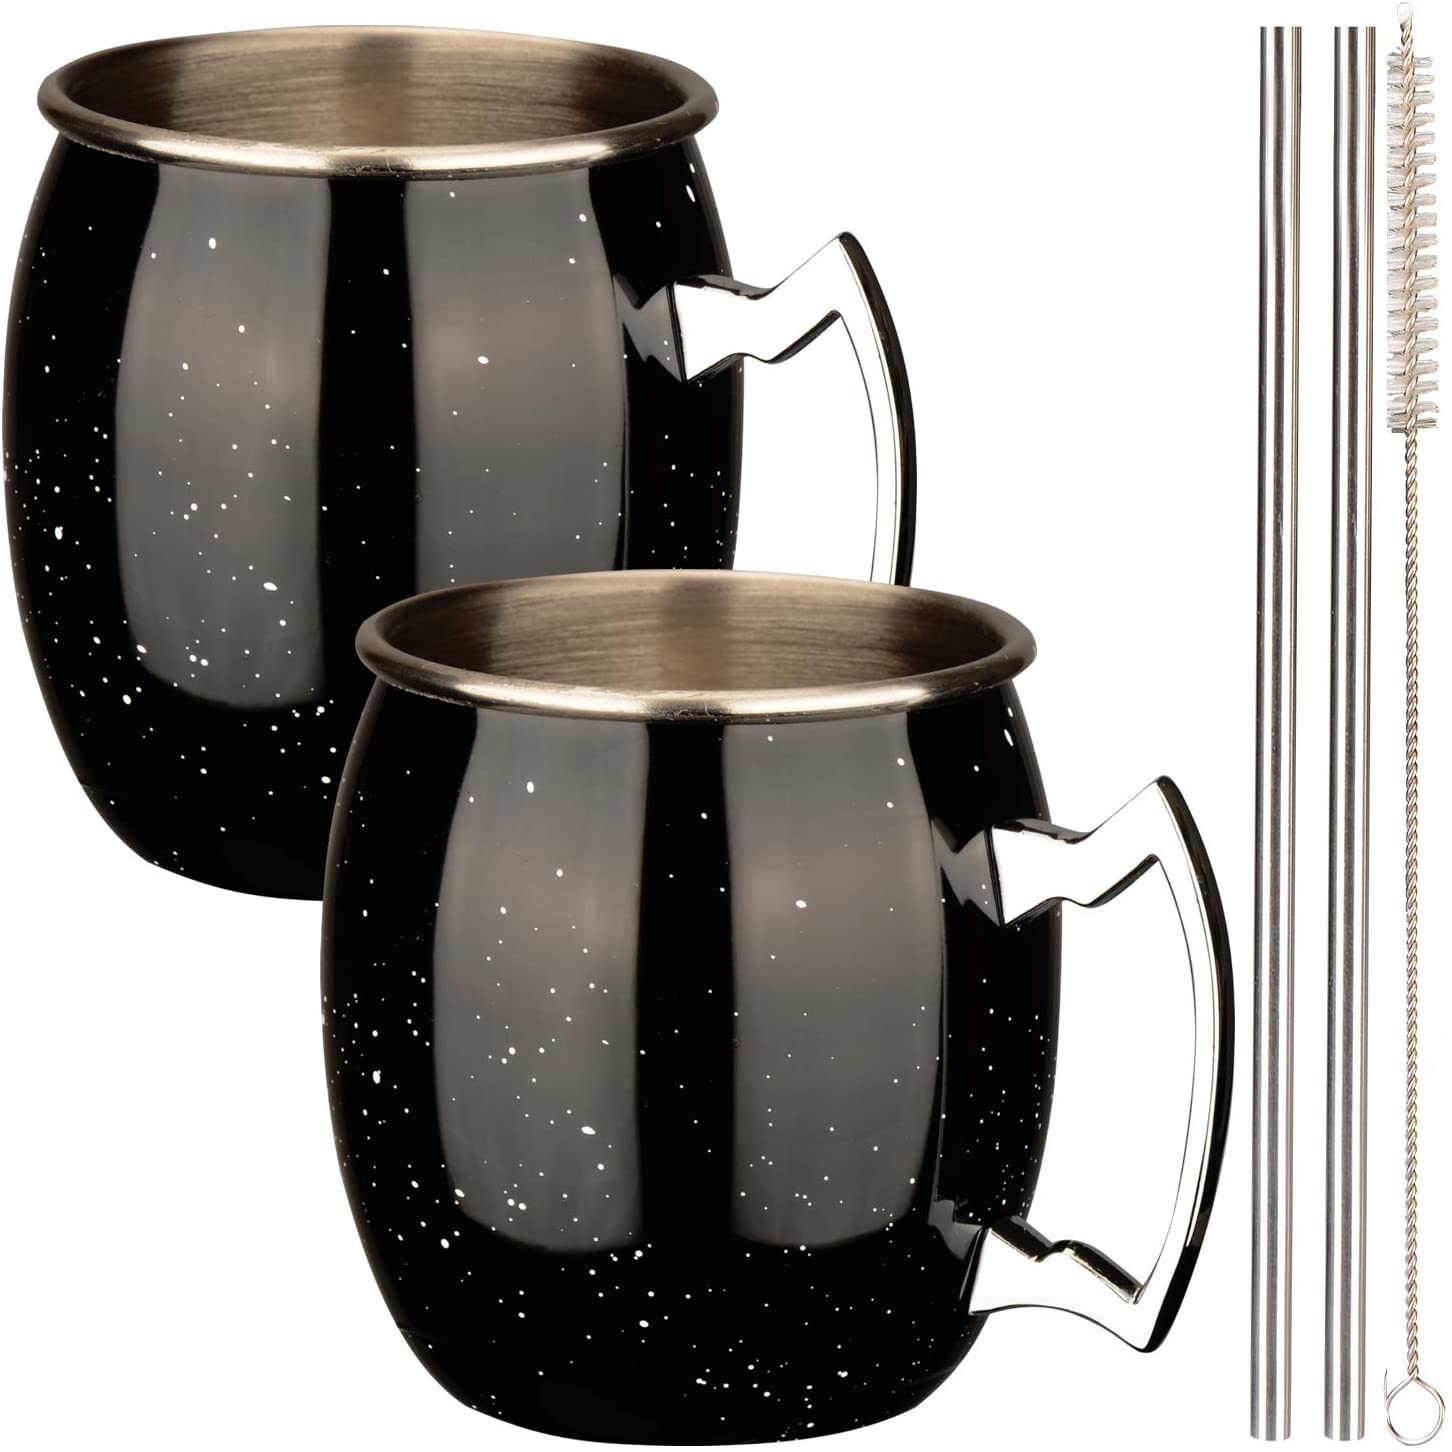 Ln Cocktail Mug Set of 2 for Moscow Mule 14oz 16oz Ounces Beer Wine Coffee Cup Starry Stainless Steel Anti-Rust for Home Party Office, Accessories: Metal Straws & Brush